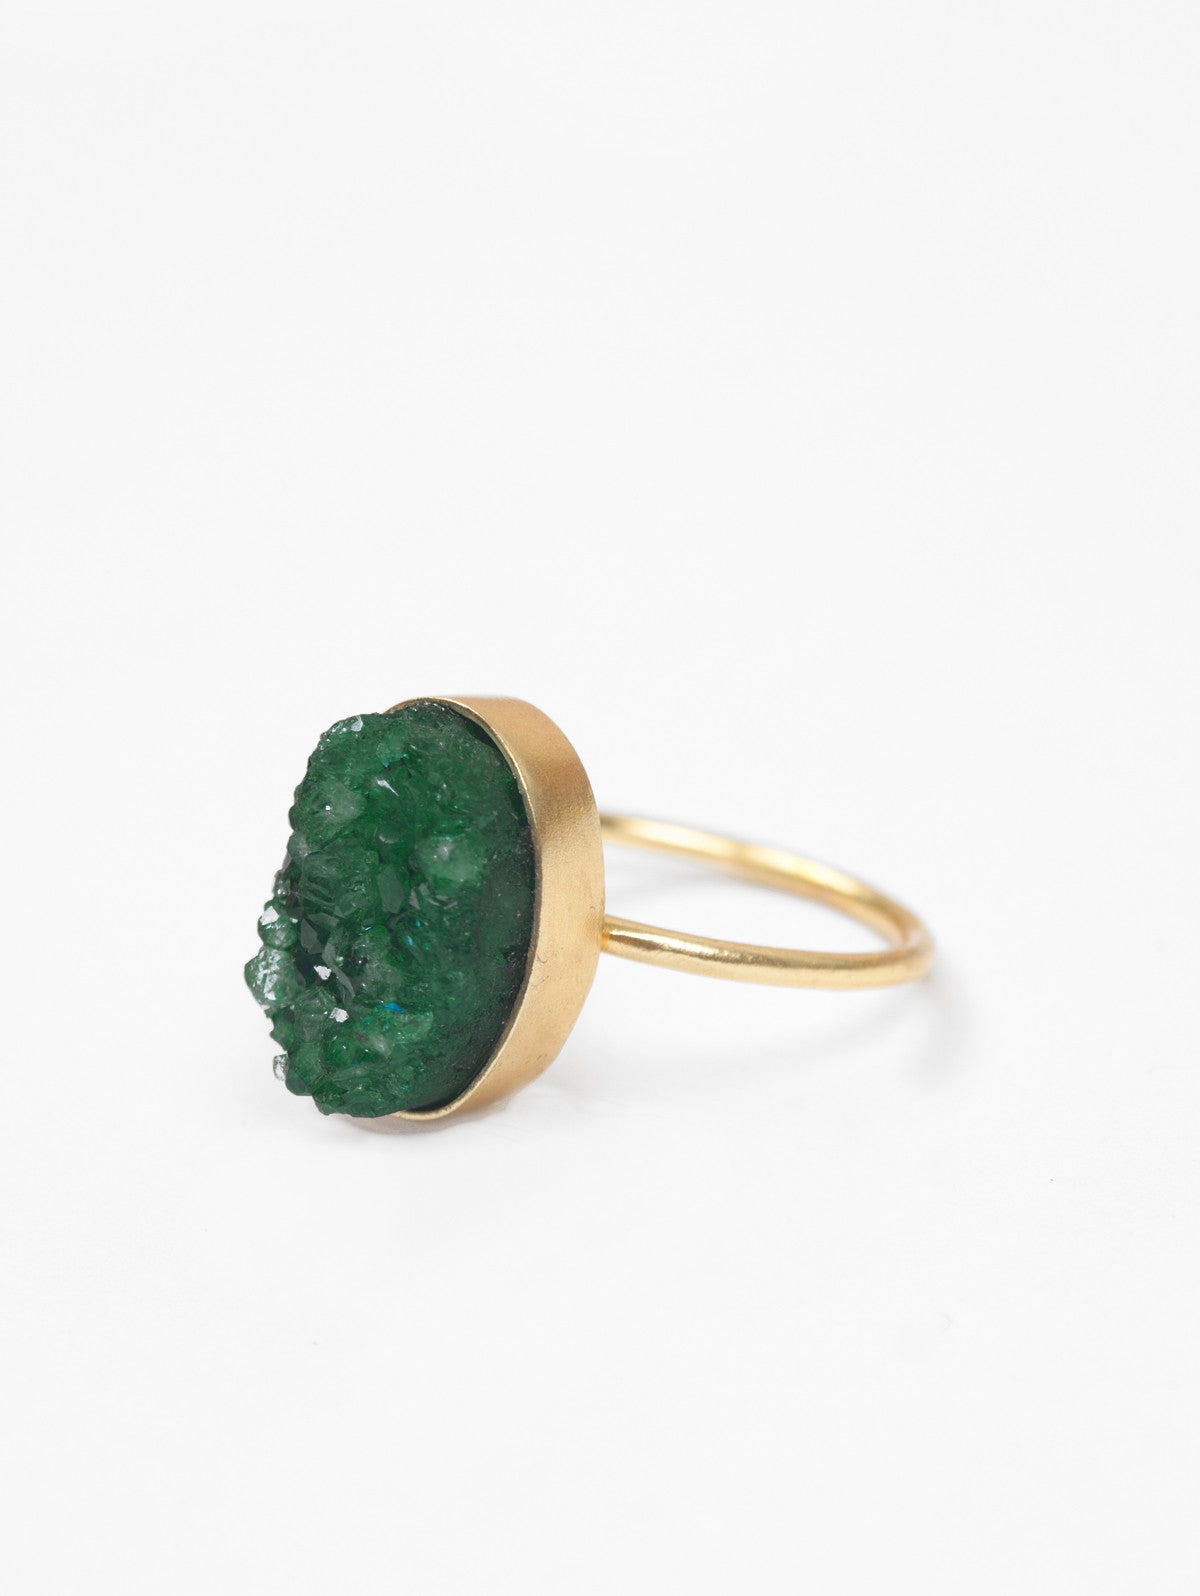 Oval Druzy Ring, Jade Green